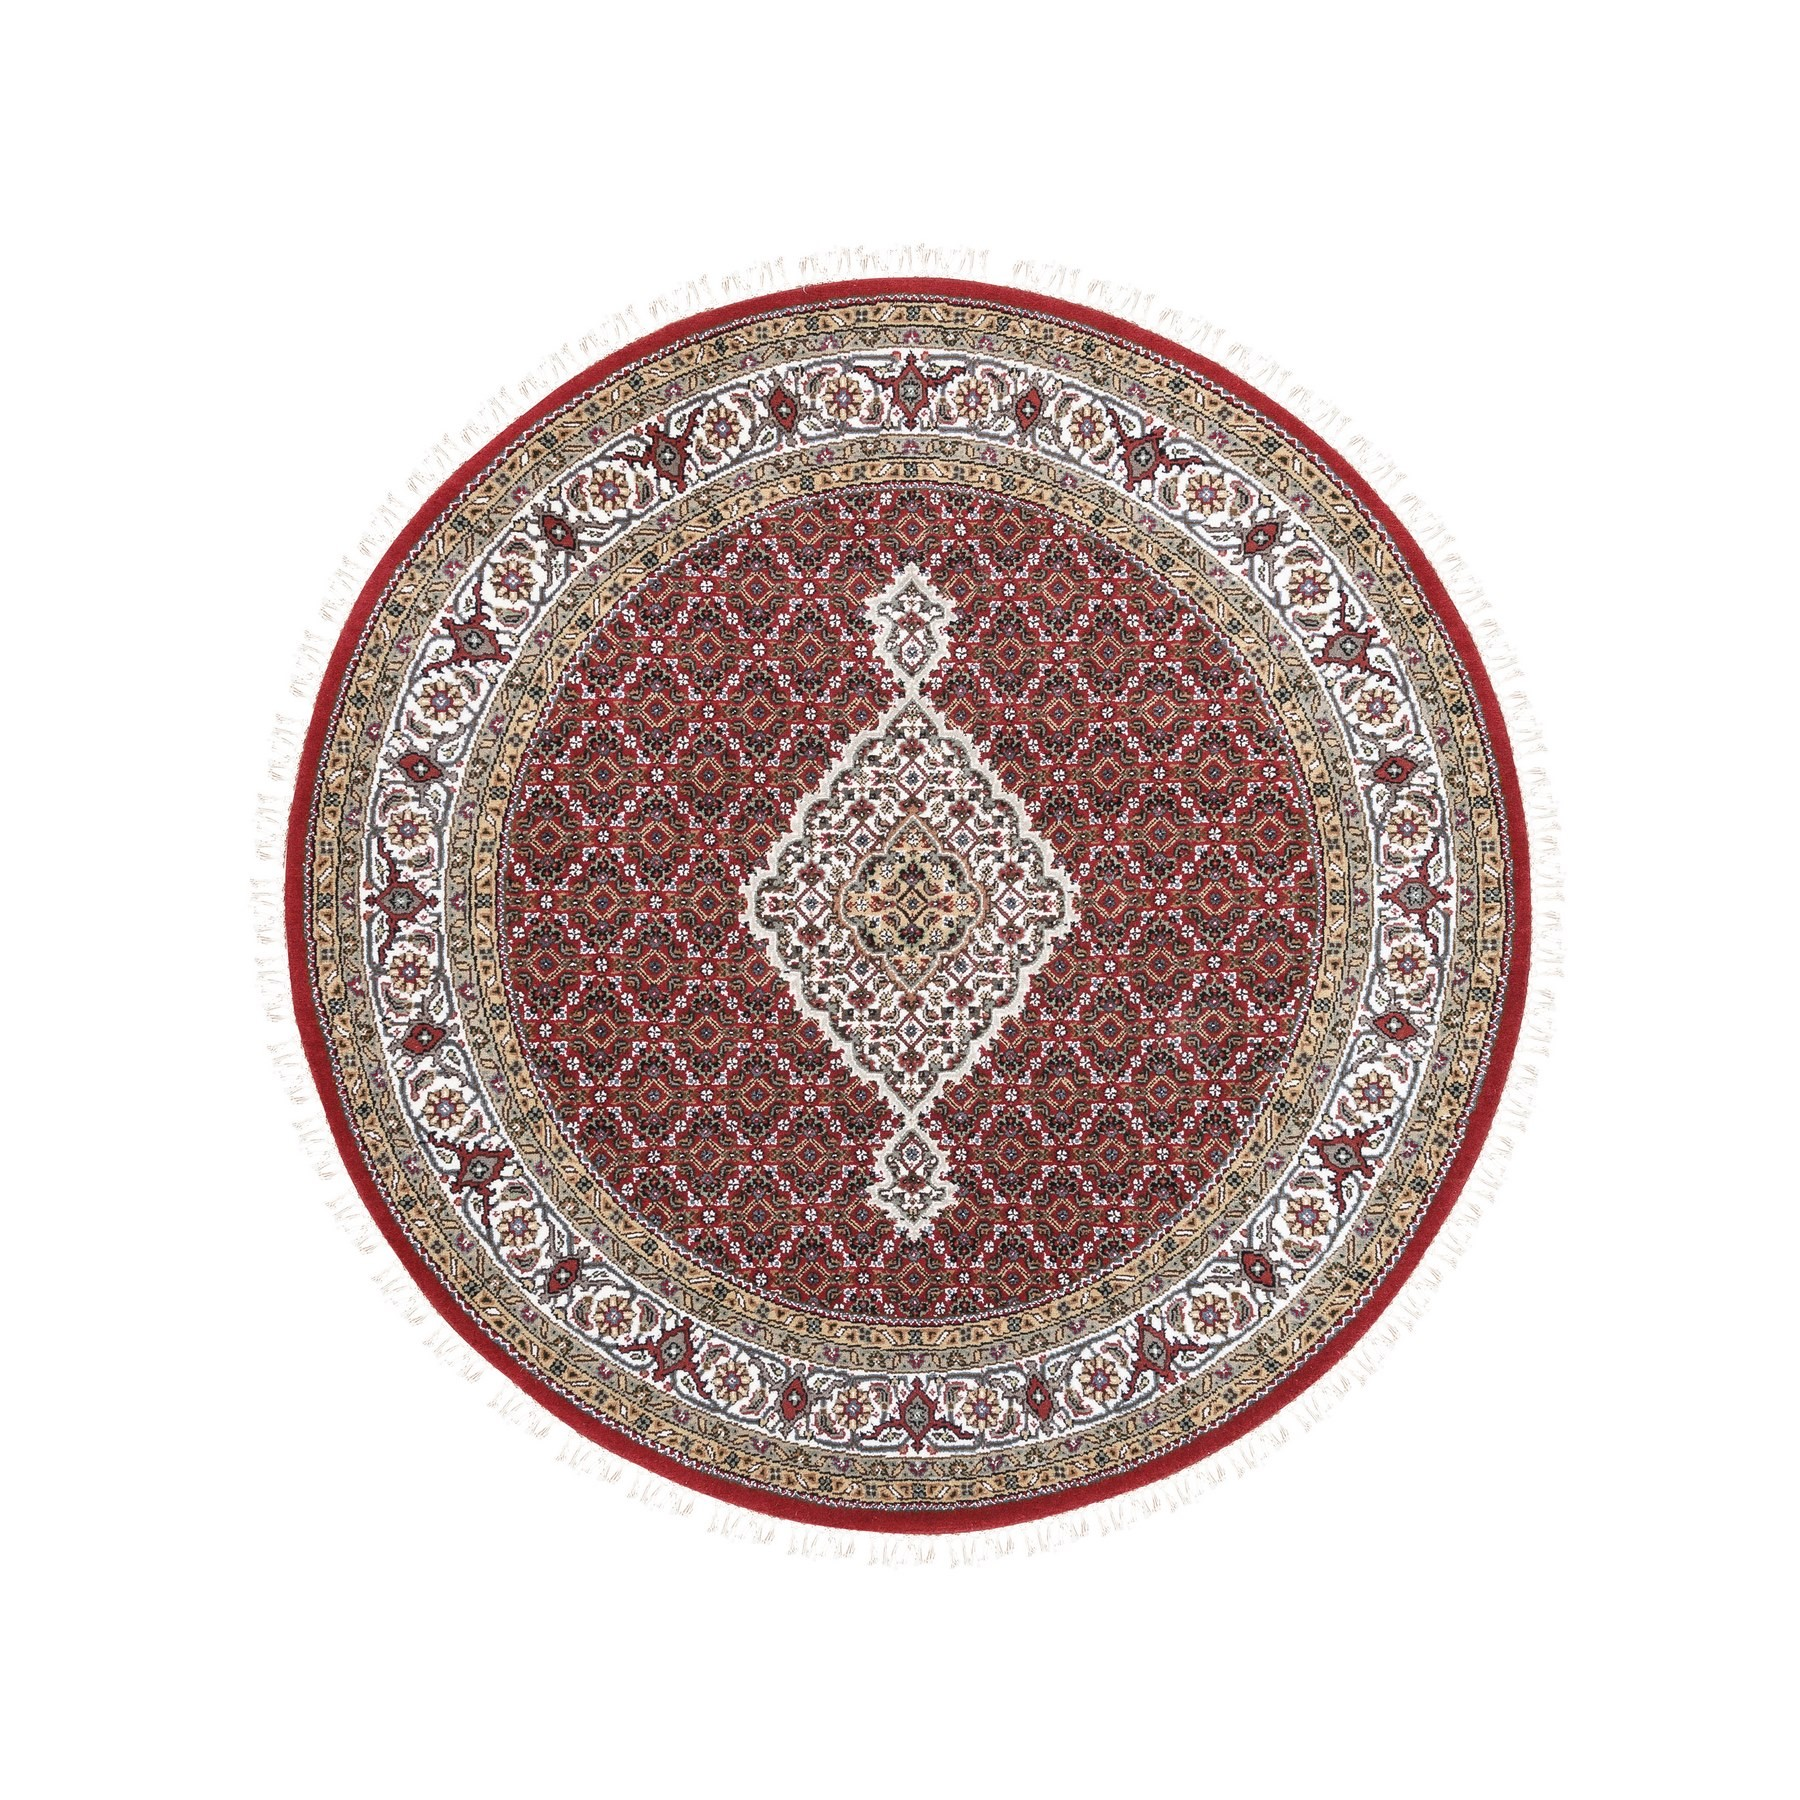 "5'4""x5'4"" Red Fish Medallion Design Tabriz Mahi Hand Woven Wool And Silk Oriental Round Rug"